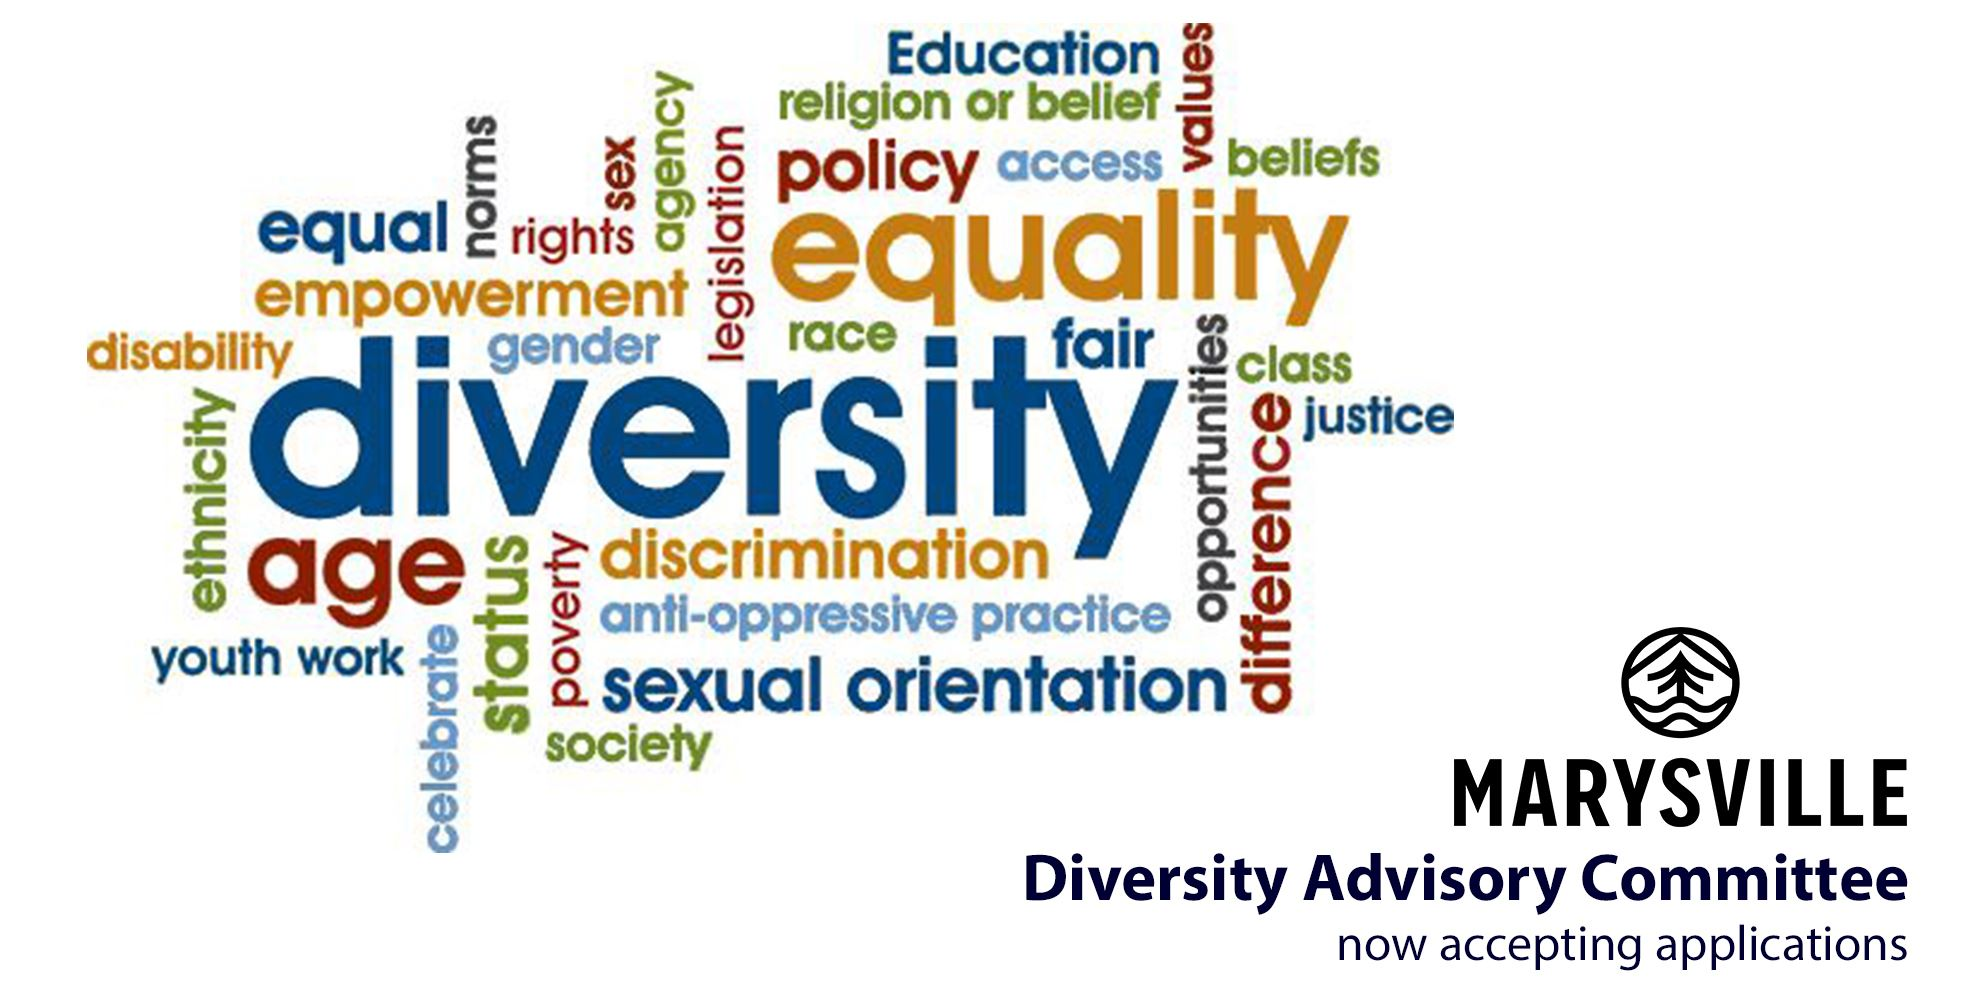 Diversity Advisory Committee now accepting applications; deadline to apply Sept. 18